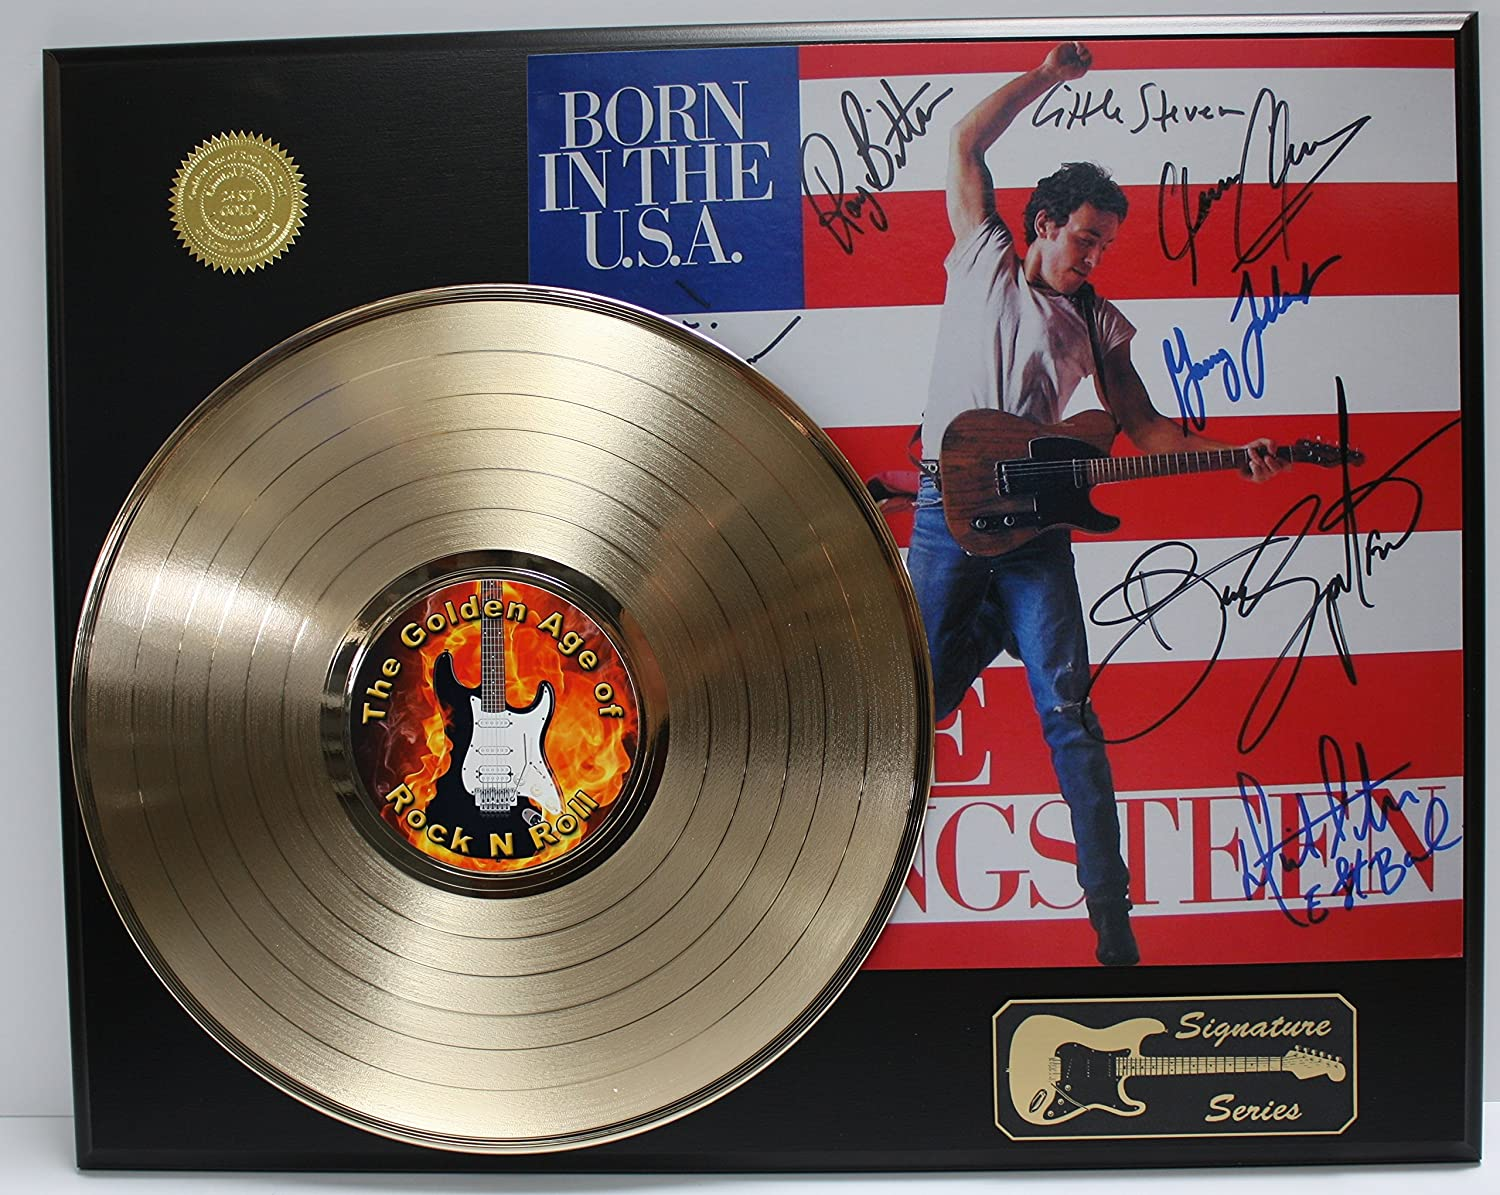 Bruce Springsteen and the E Street Band Gold LP Record Signature Series Limited Edition Display